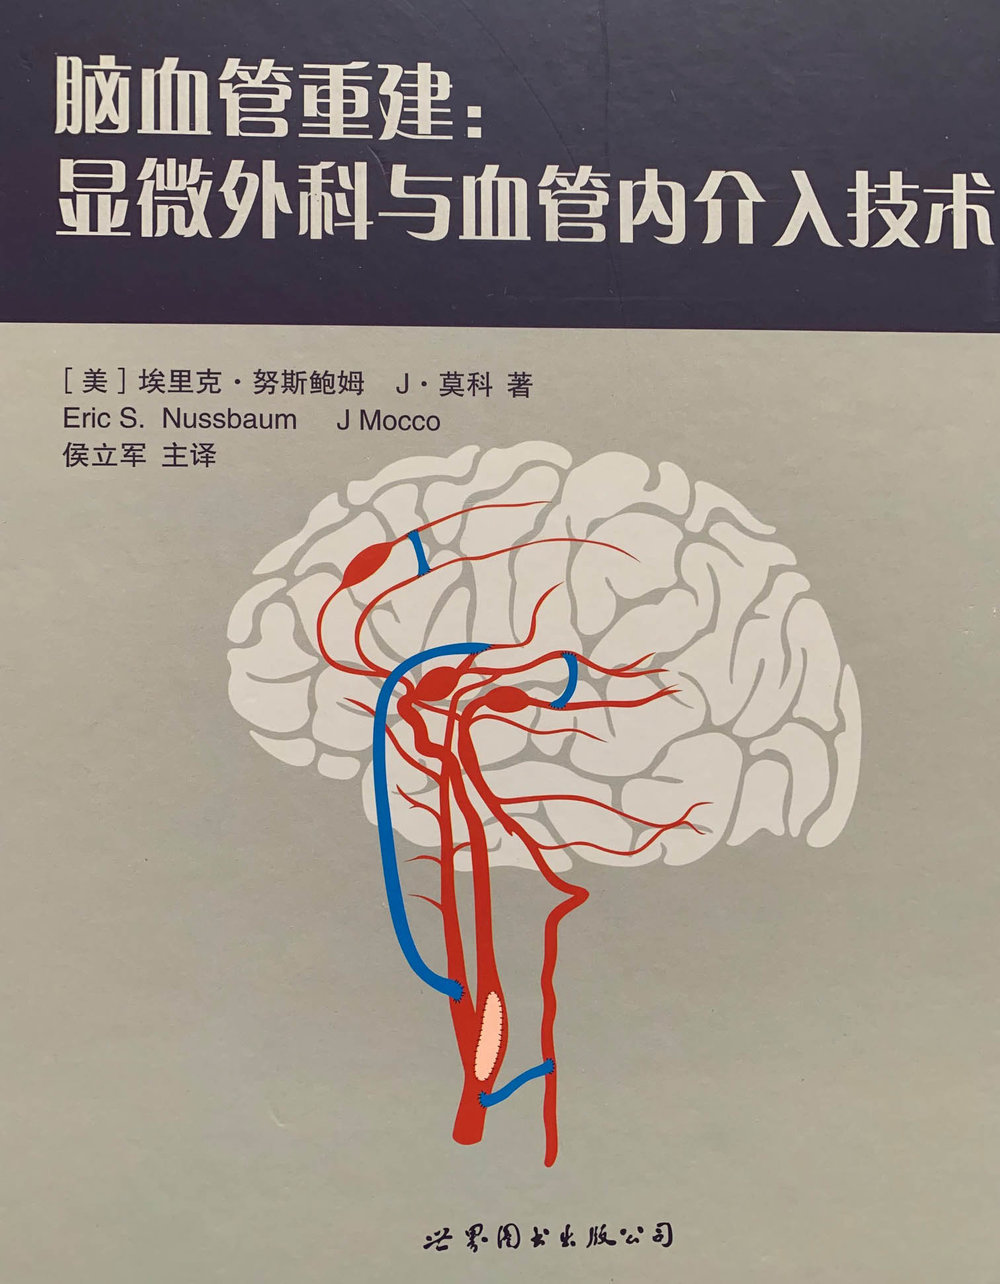 Eric_Nussbaum_MD_Aneurysm_book_Chinese.jpg